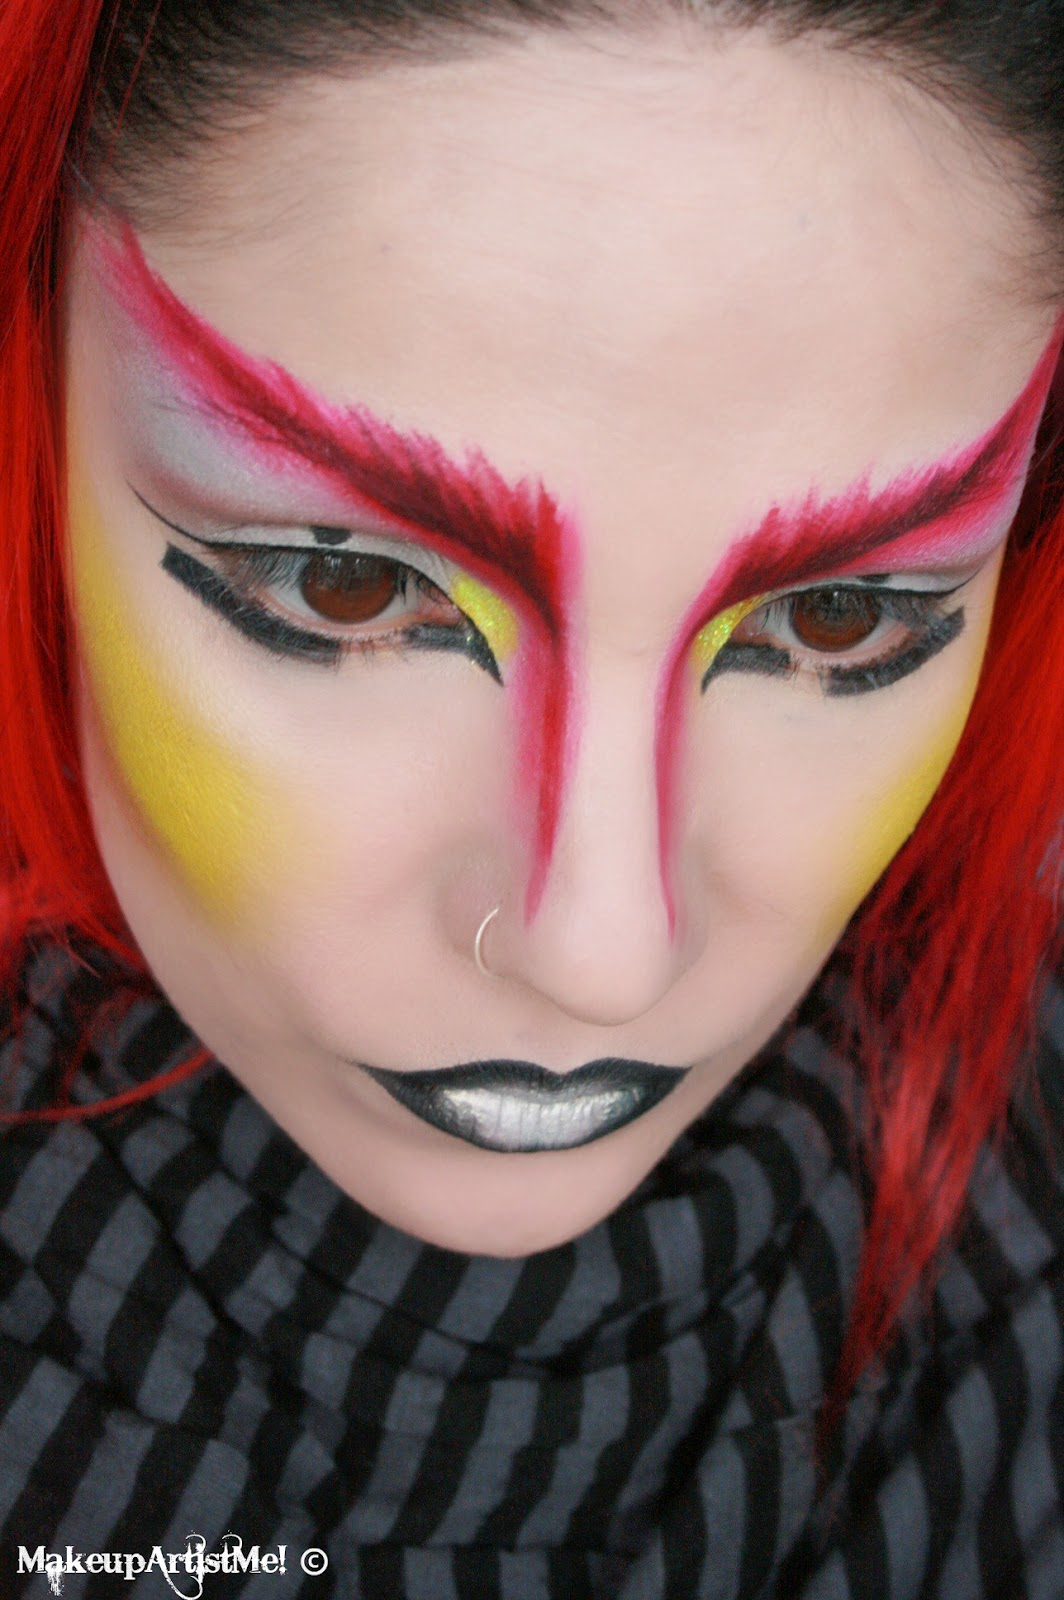 Make-up Artist Me!: Warrior -- An Artistic Makeup Look